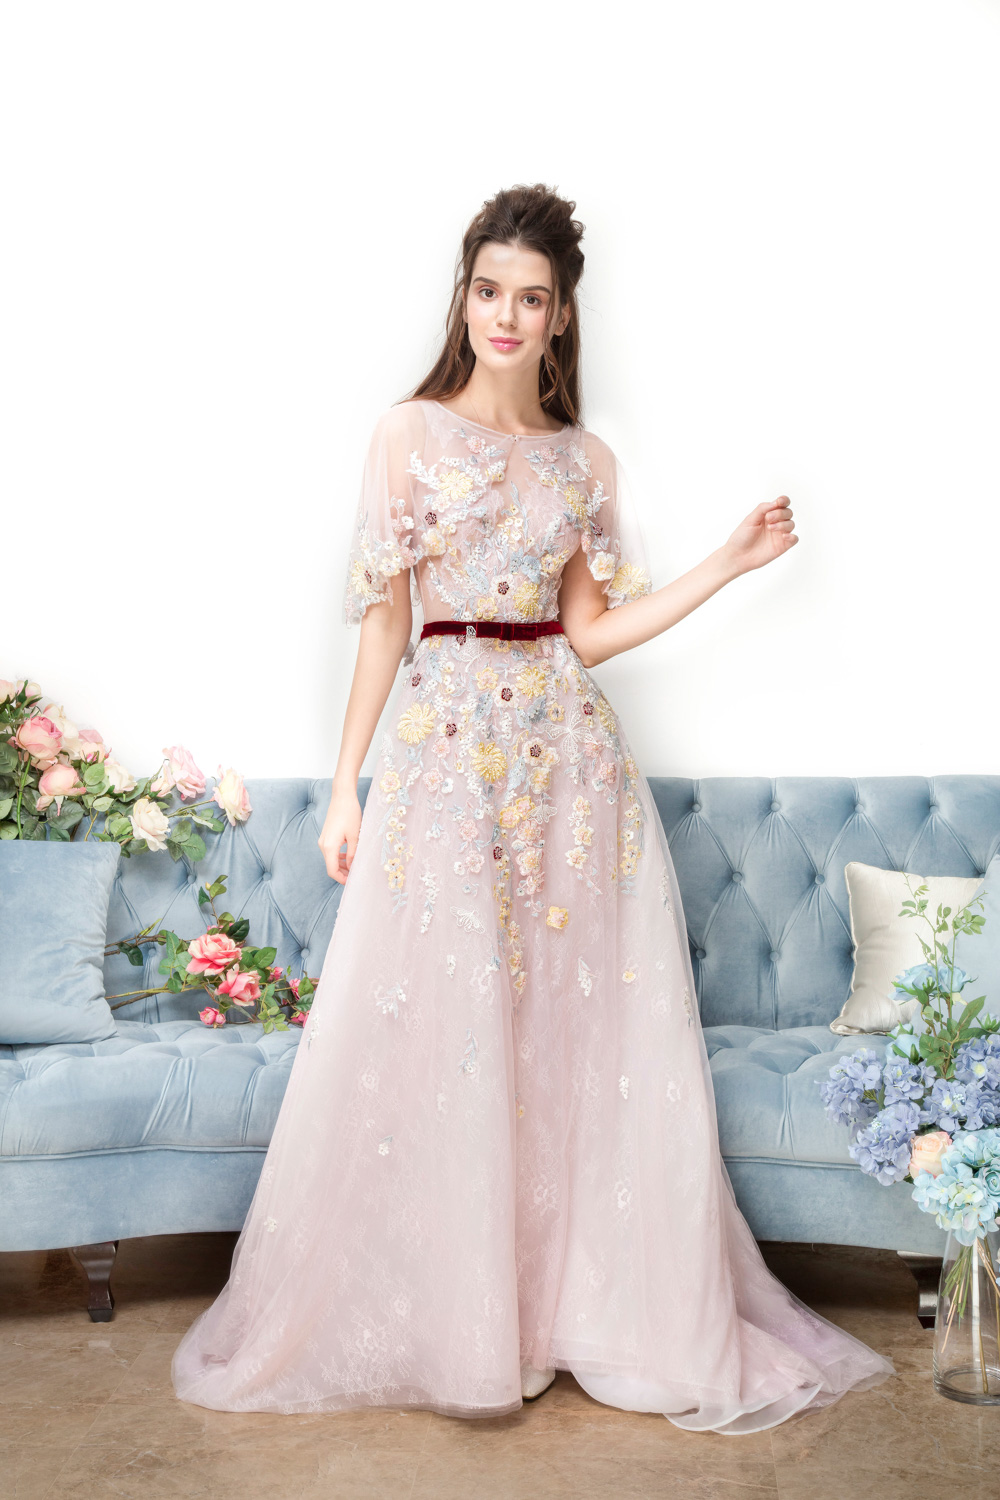 Pink evening gown with shoulder cape detail and velvet bow by CCM Wedding